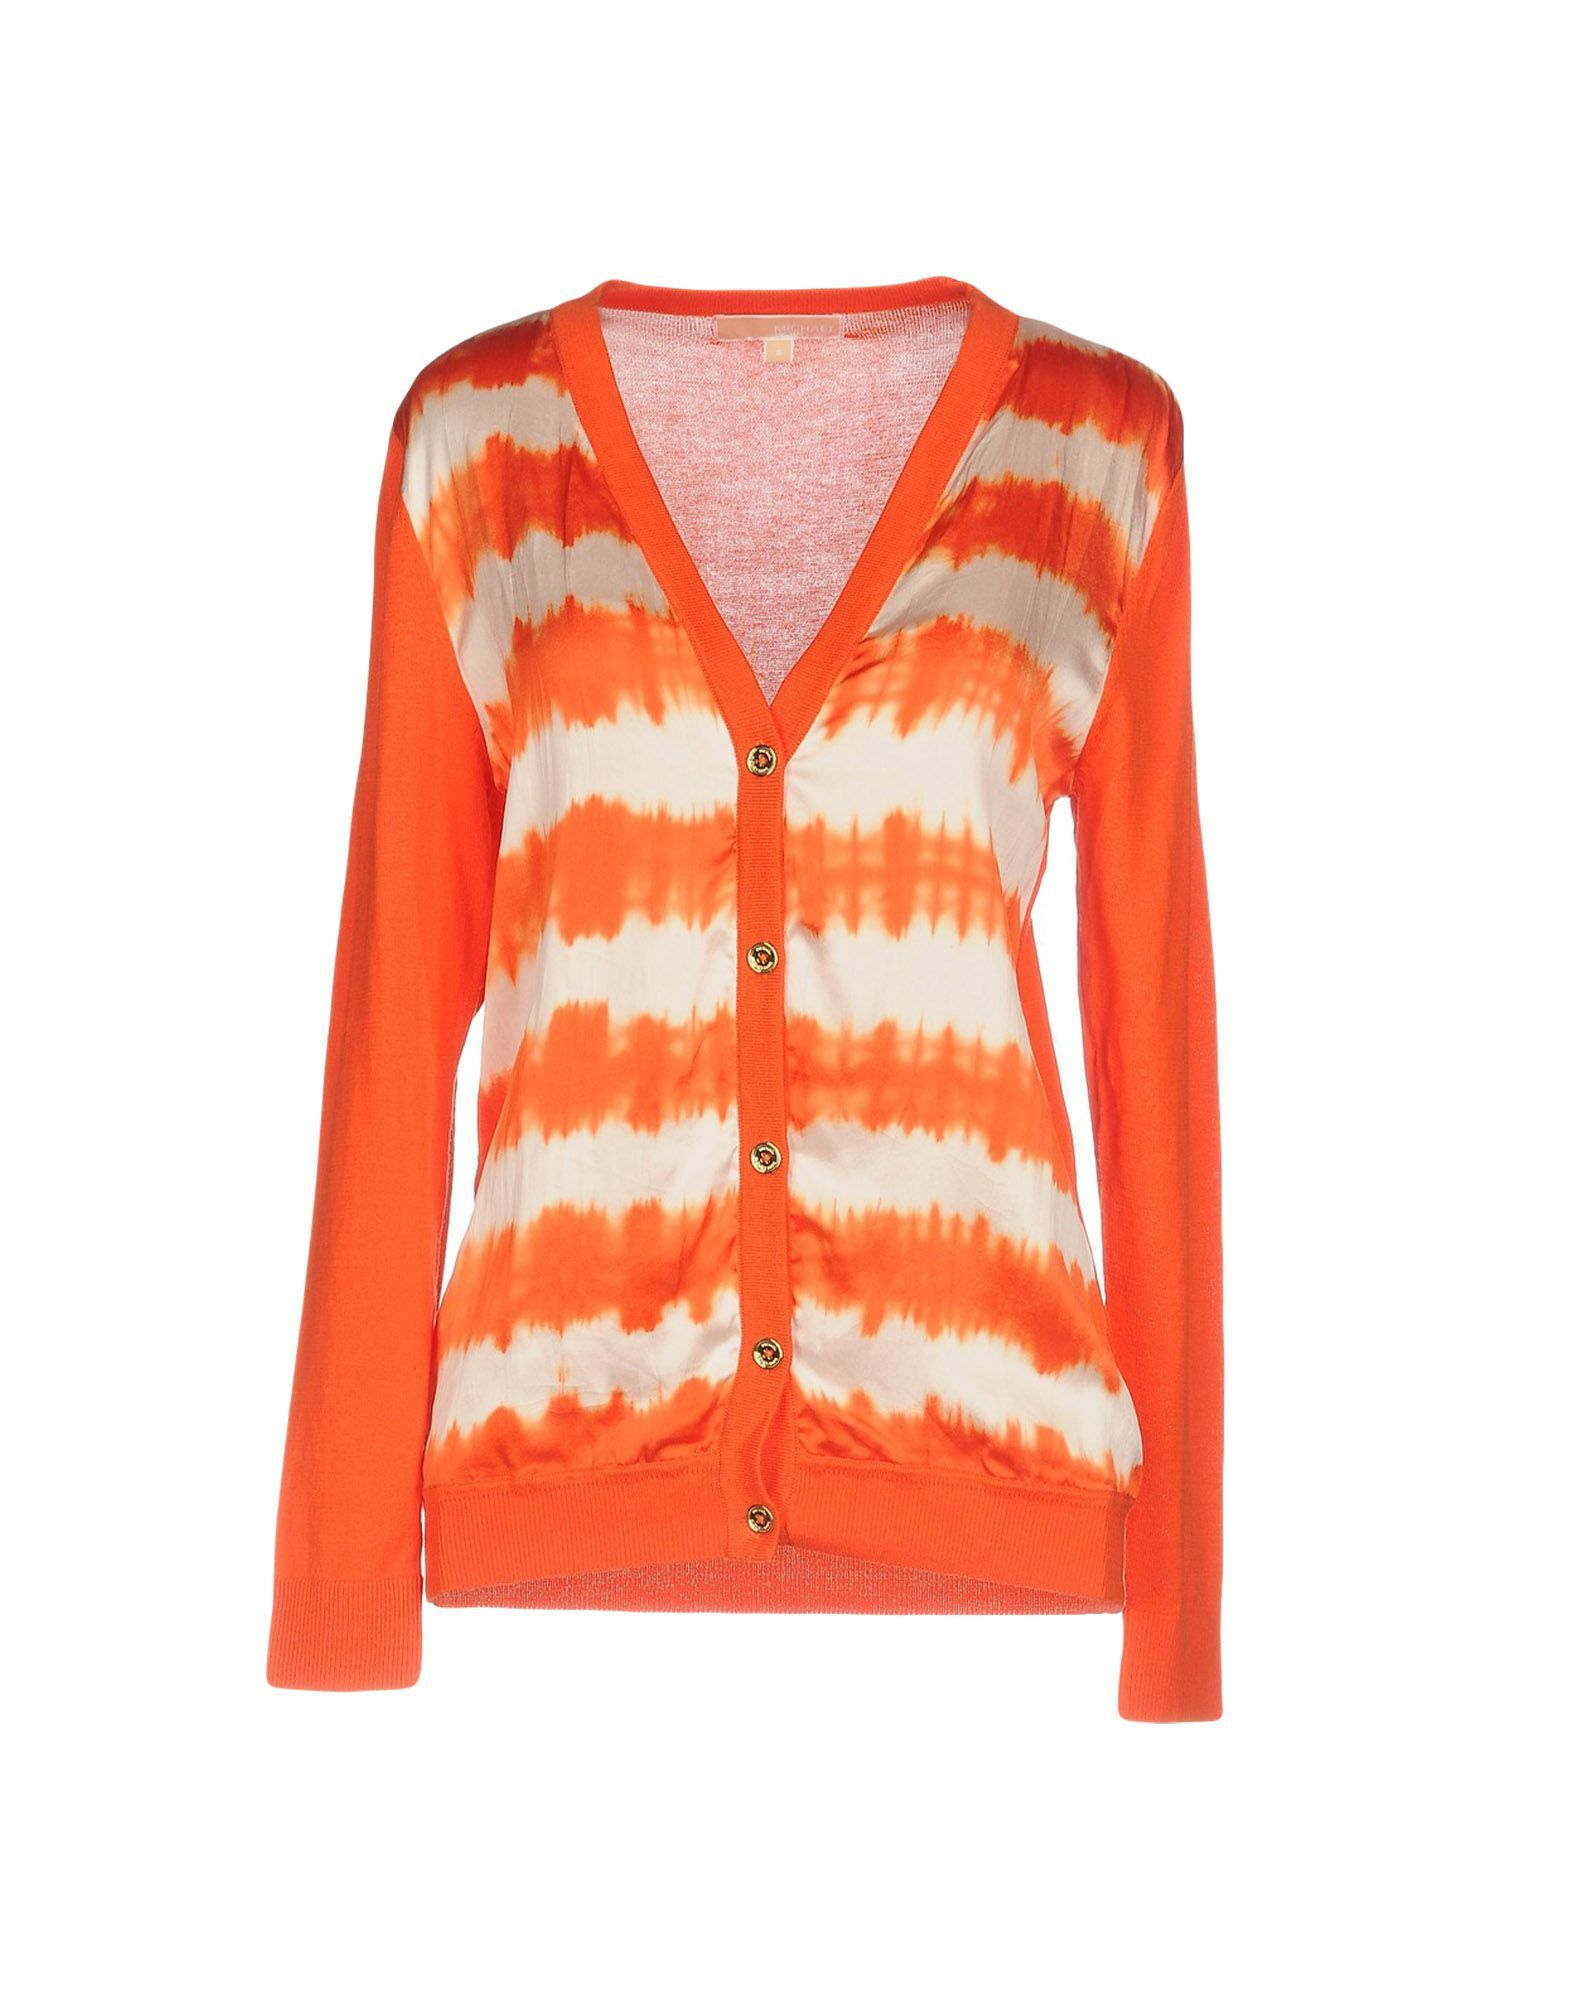 f855b9130fe7f4 MICHAEL MICHAEL KORS Damen Strickjacke6 orange - Kategorie  Damen  Bekleidung Sale Strickjacken Crepe de Chine